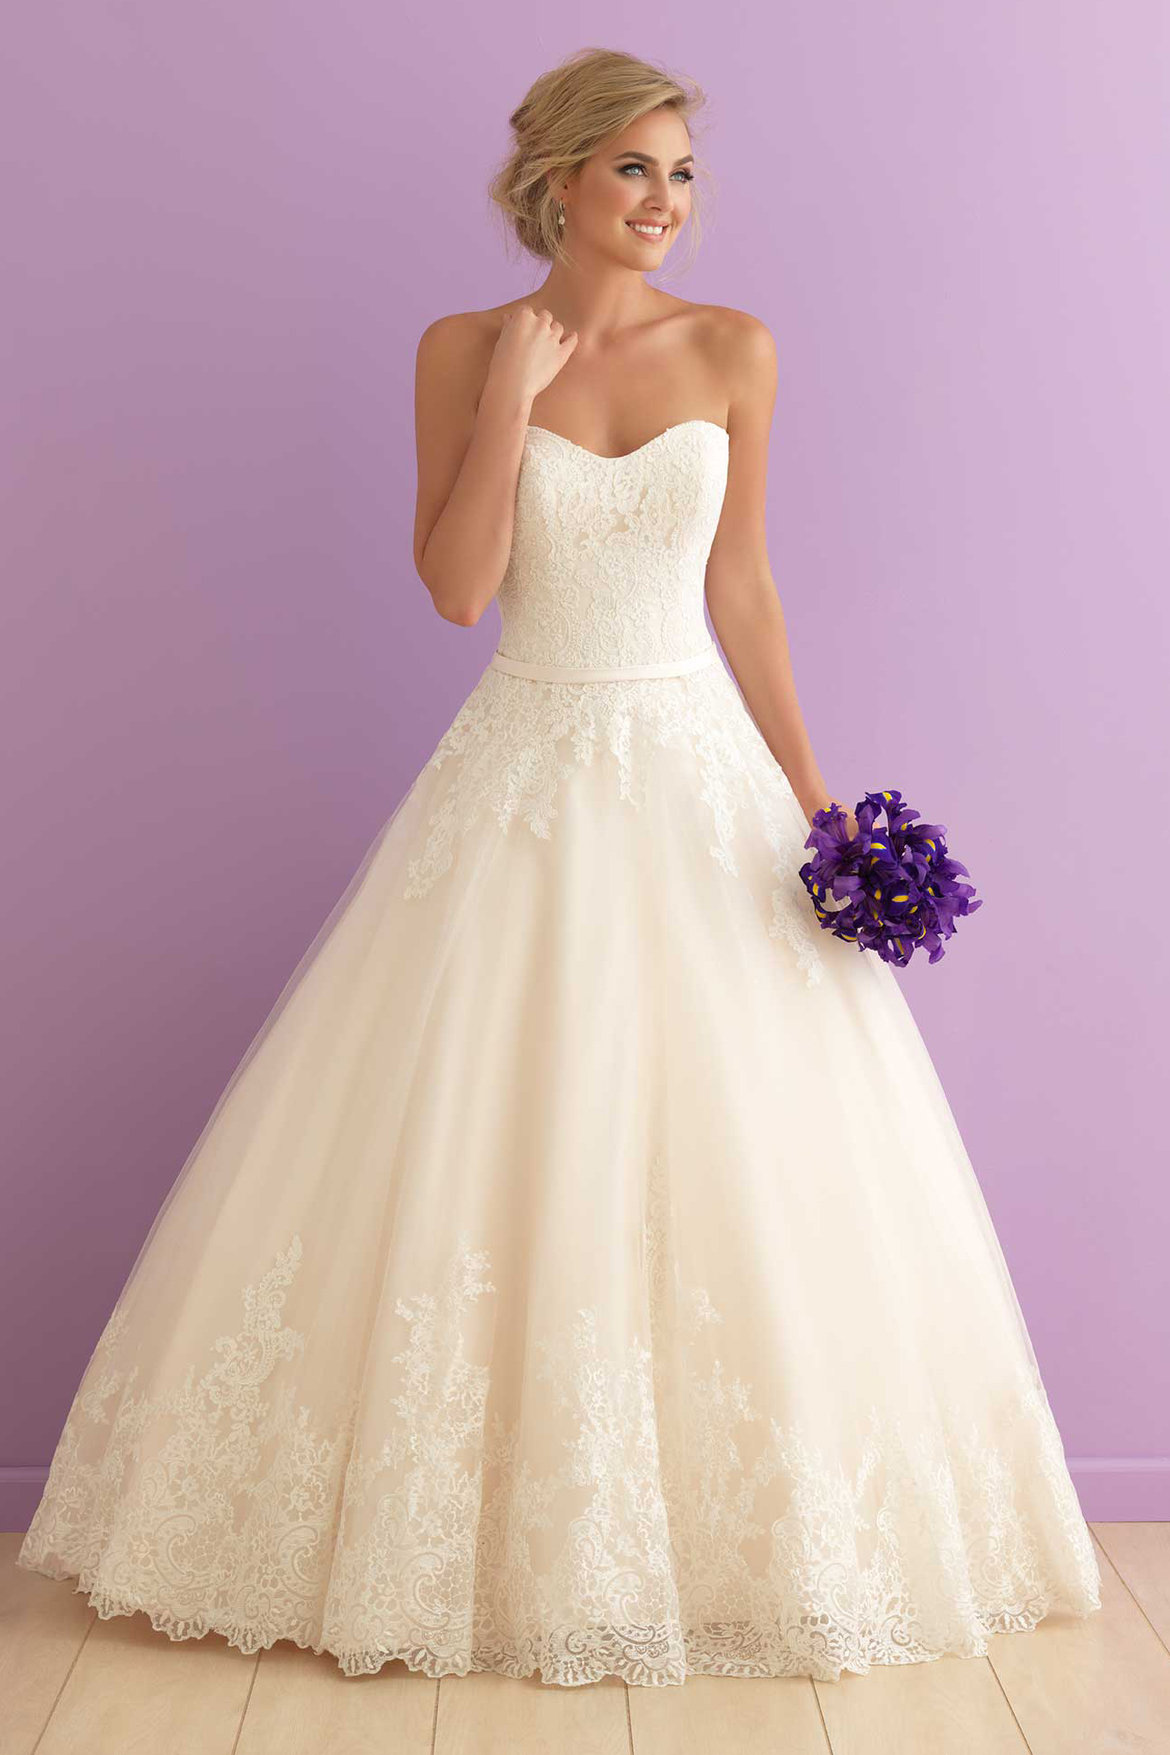 top wedding gowns most popular wedding dresses See more Allure Romance dresses in our gown gallery